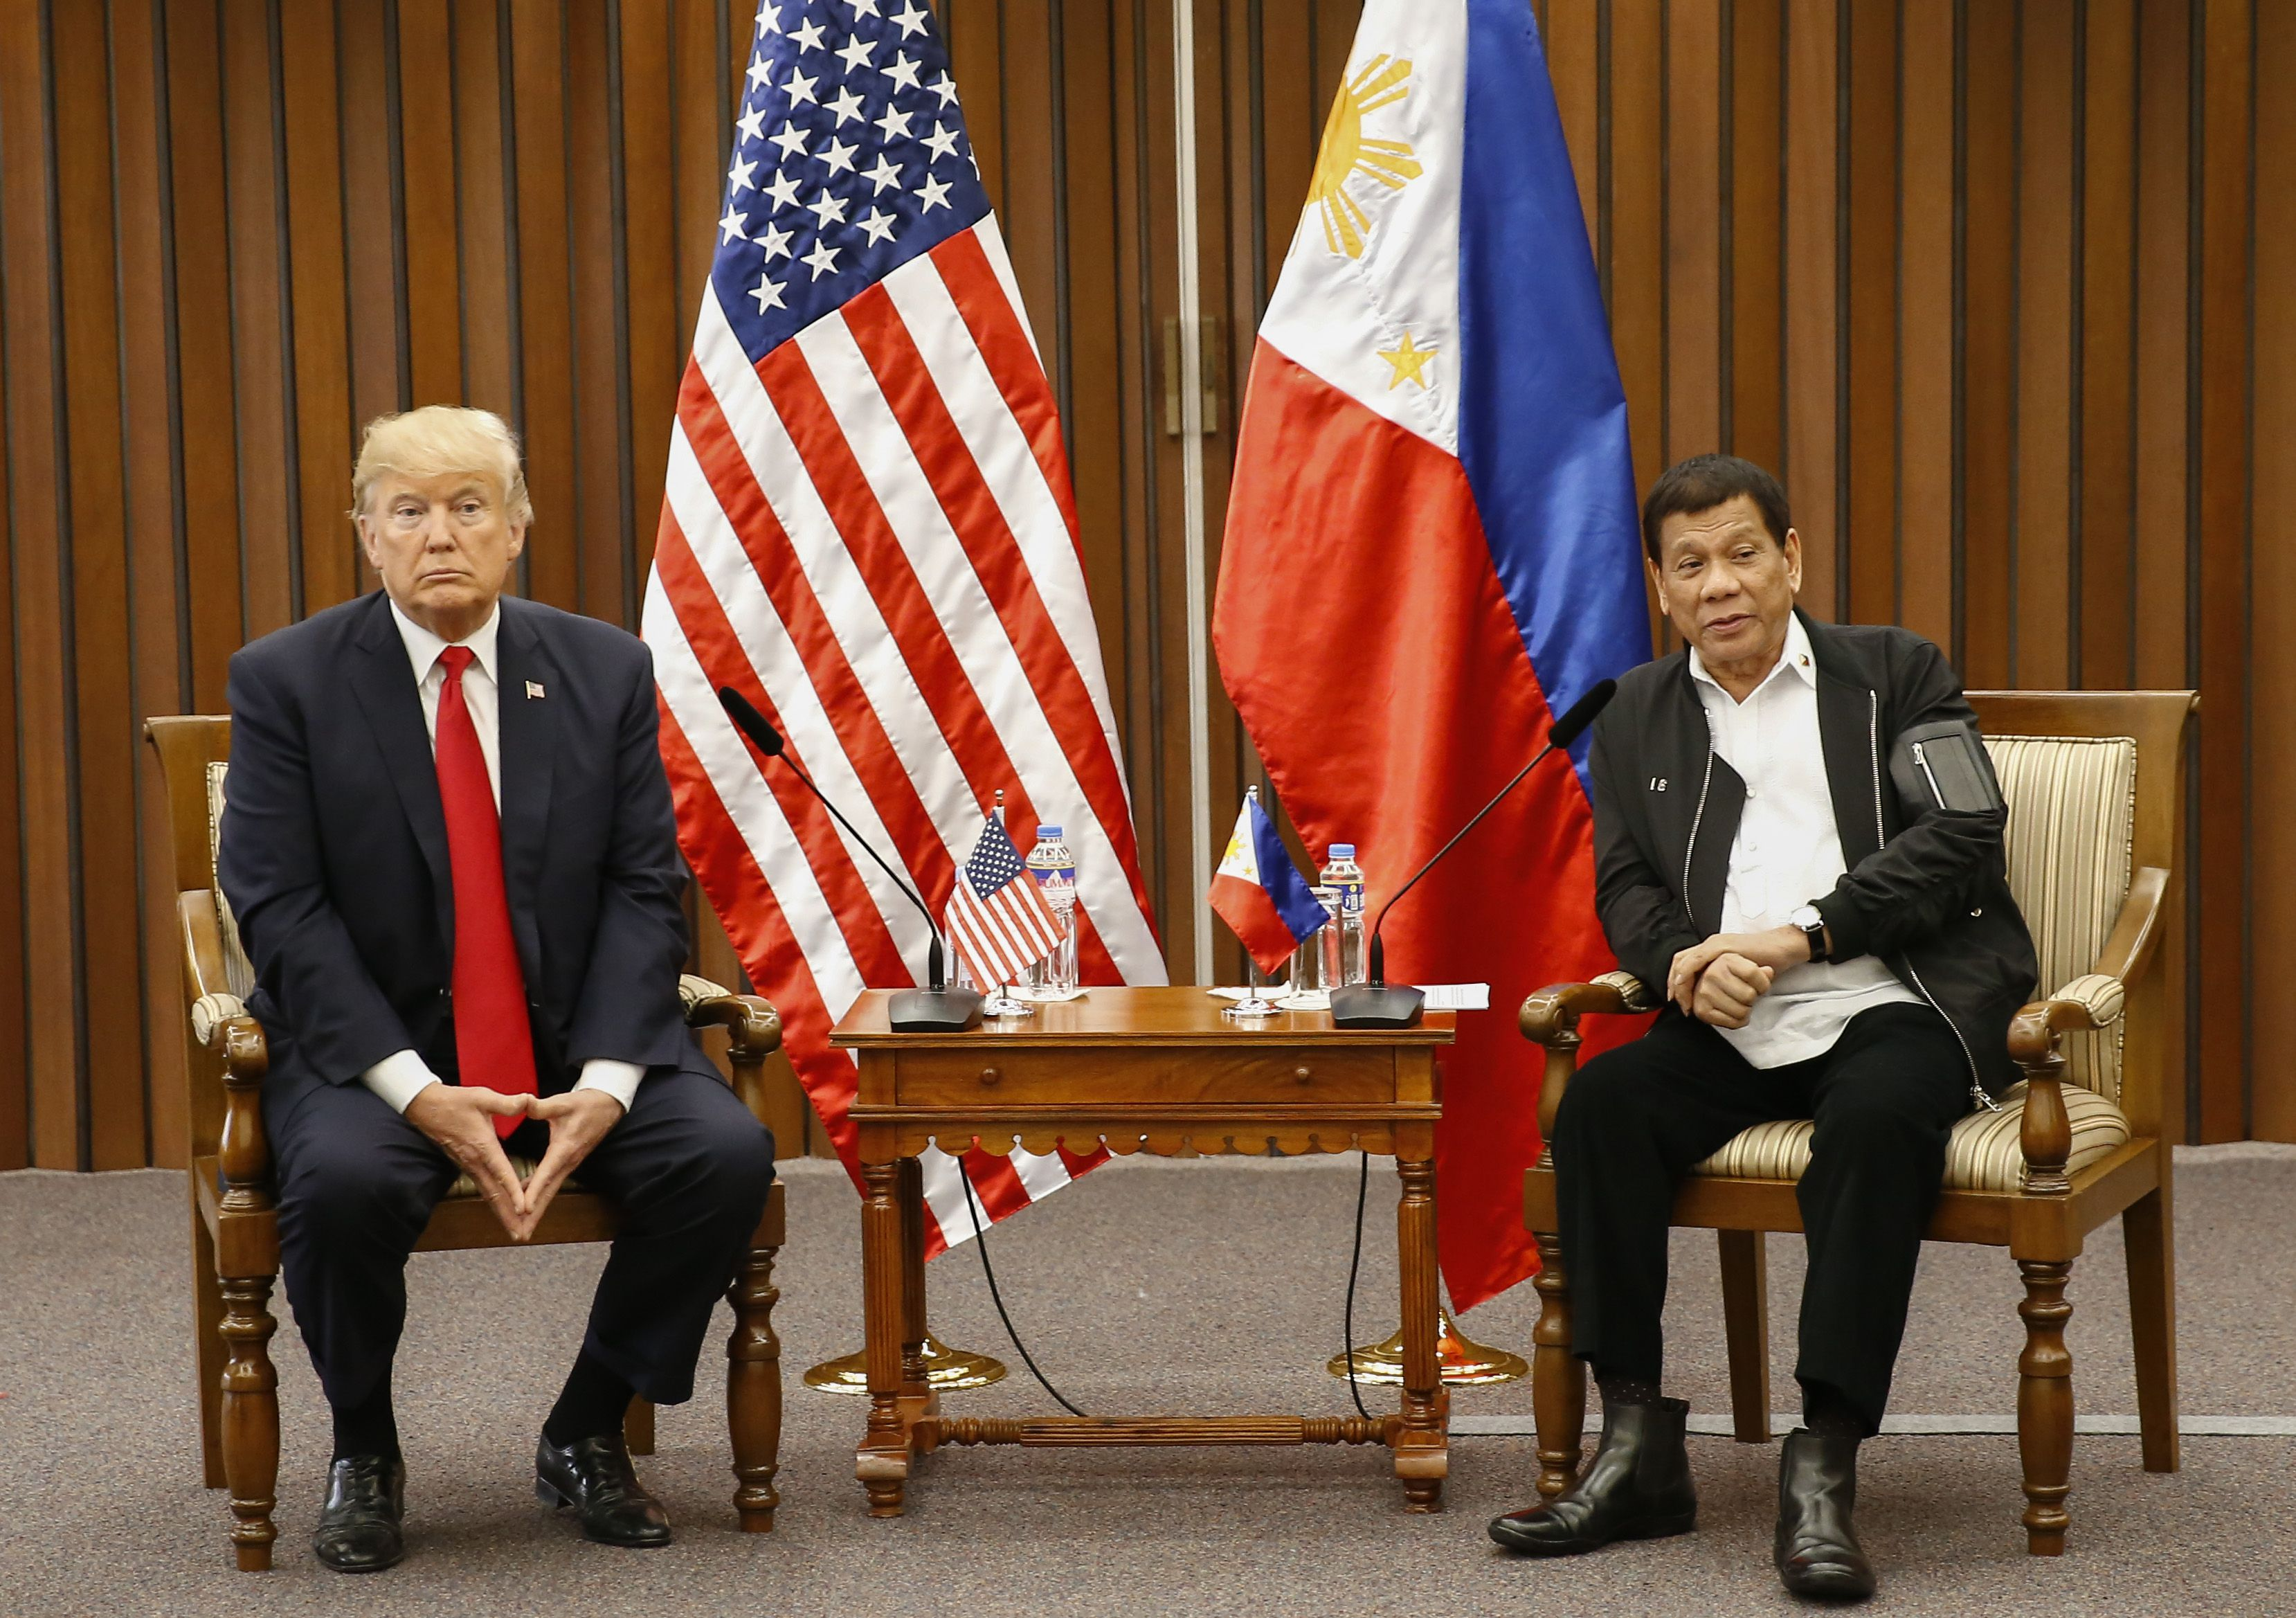 Philippines reverses decision to terminate military pact with U.S.